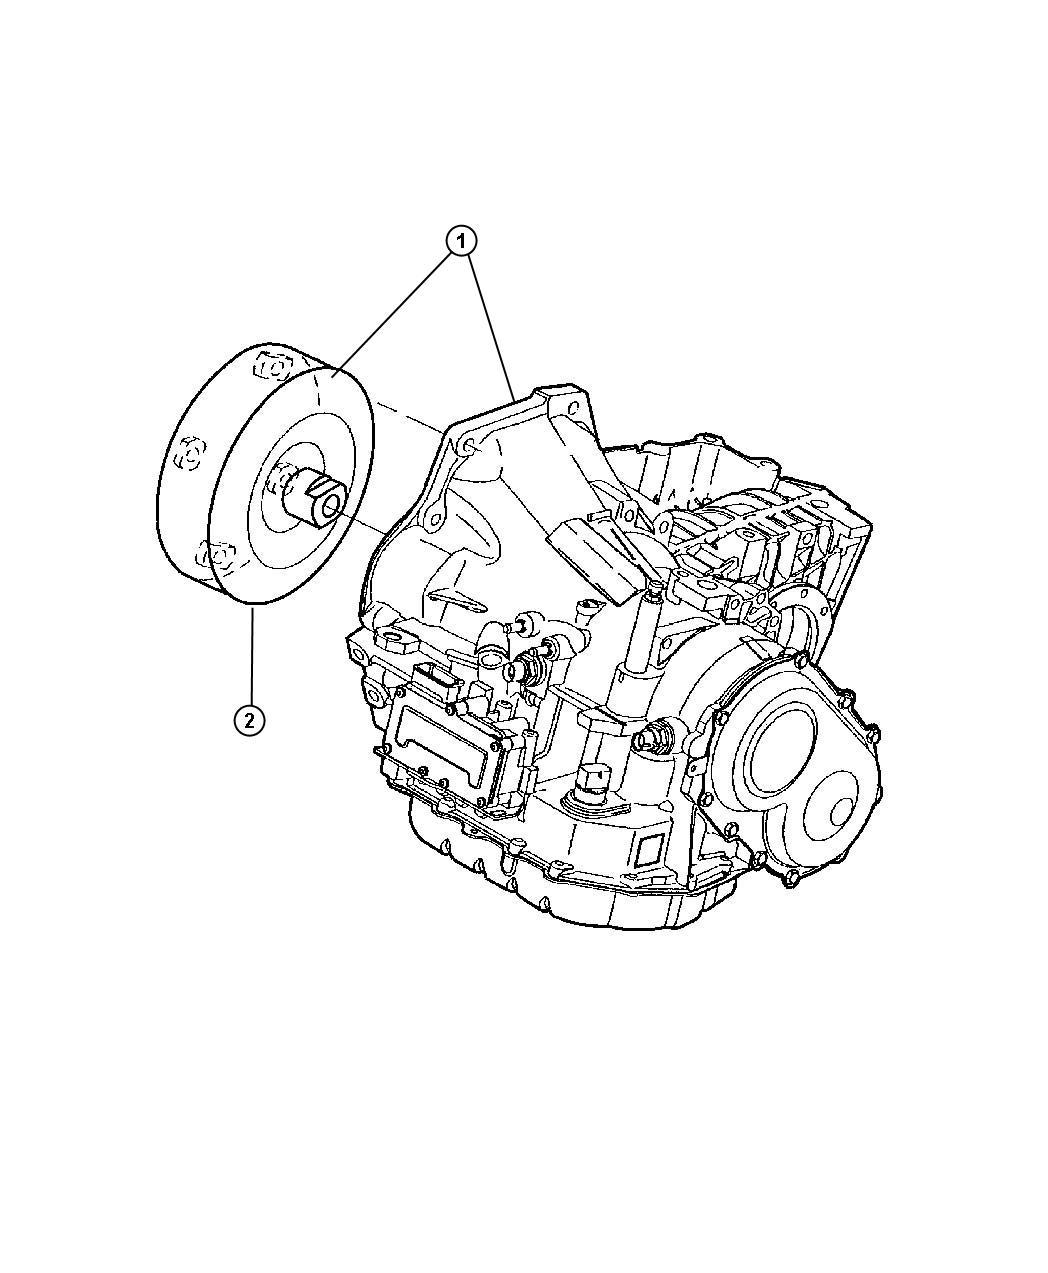 2007 Chrysler Town & Country BASE 3.3L V6 Transaxle